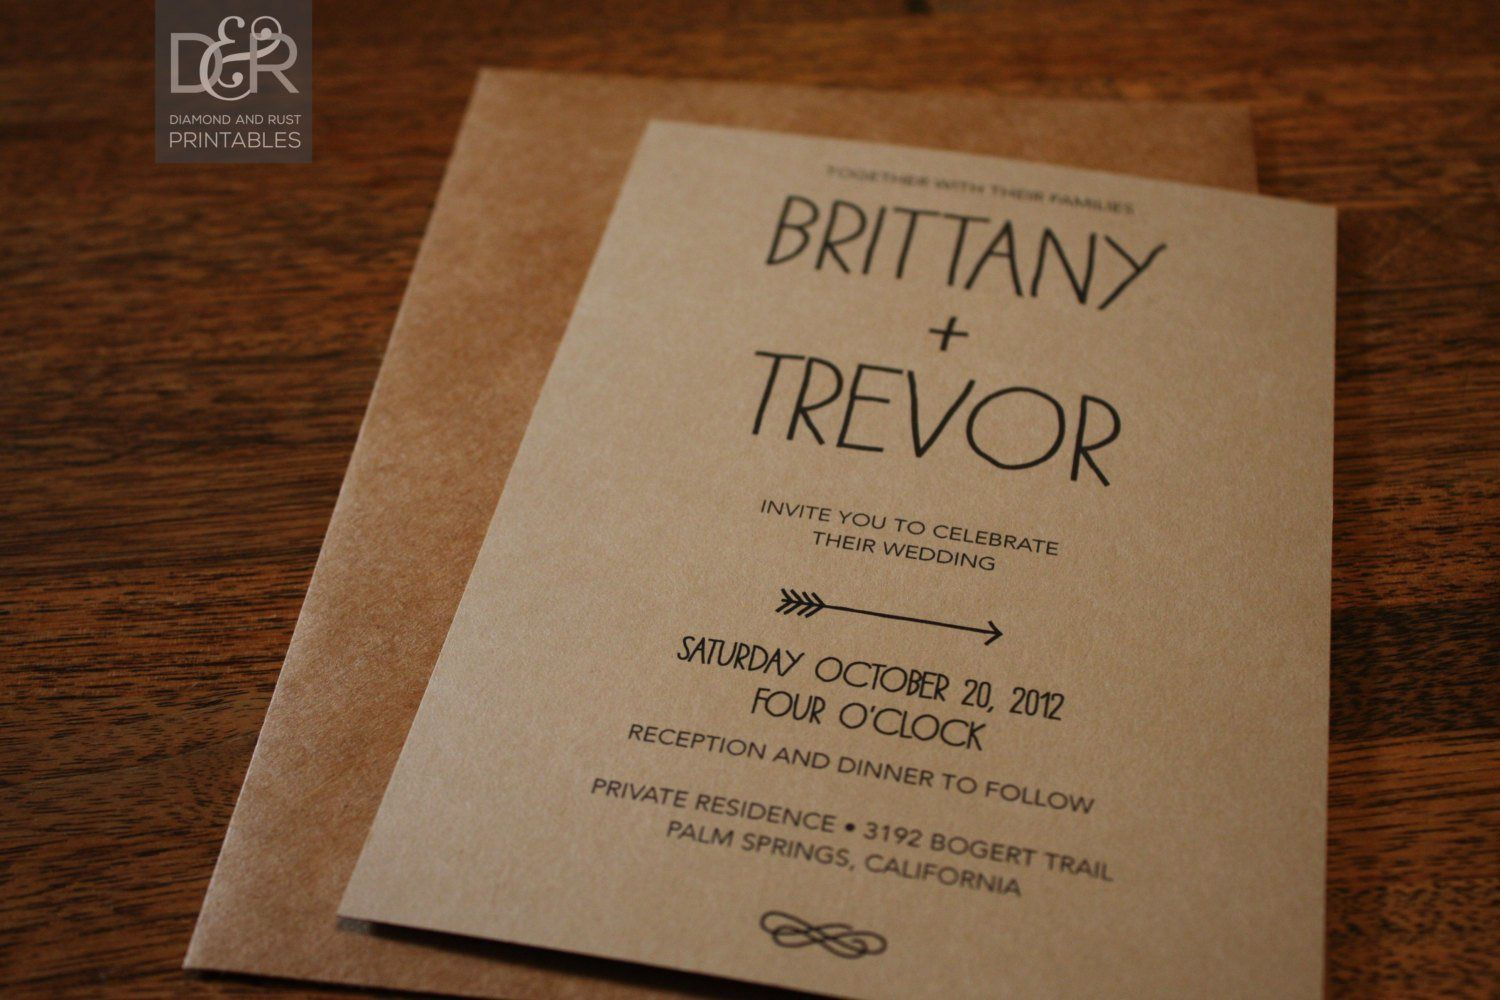 006 Fascinating Rustic Wedding Invitation Template Example  Templates Free For Word Maker PhotoshopFull